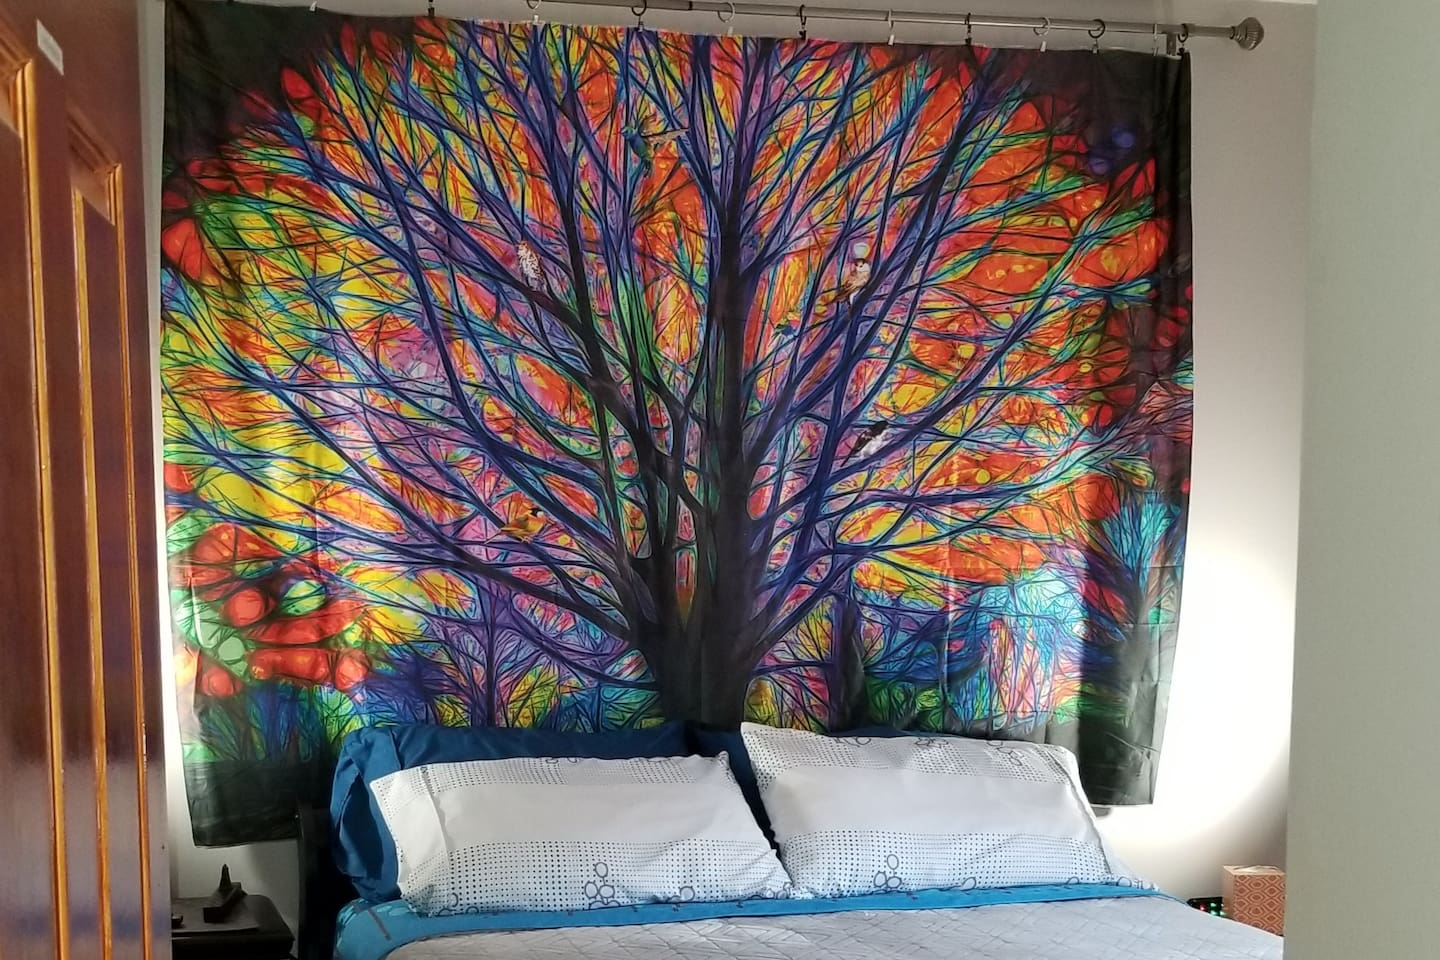 Queen bedroom with new tapestry on the wall.